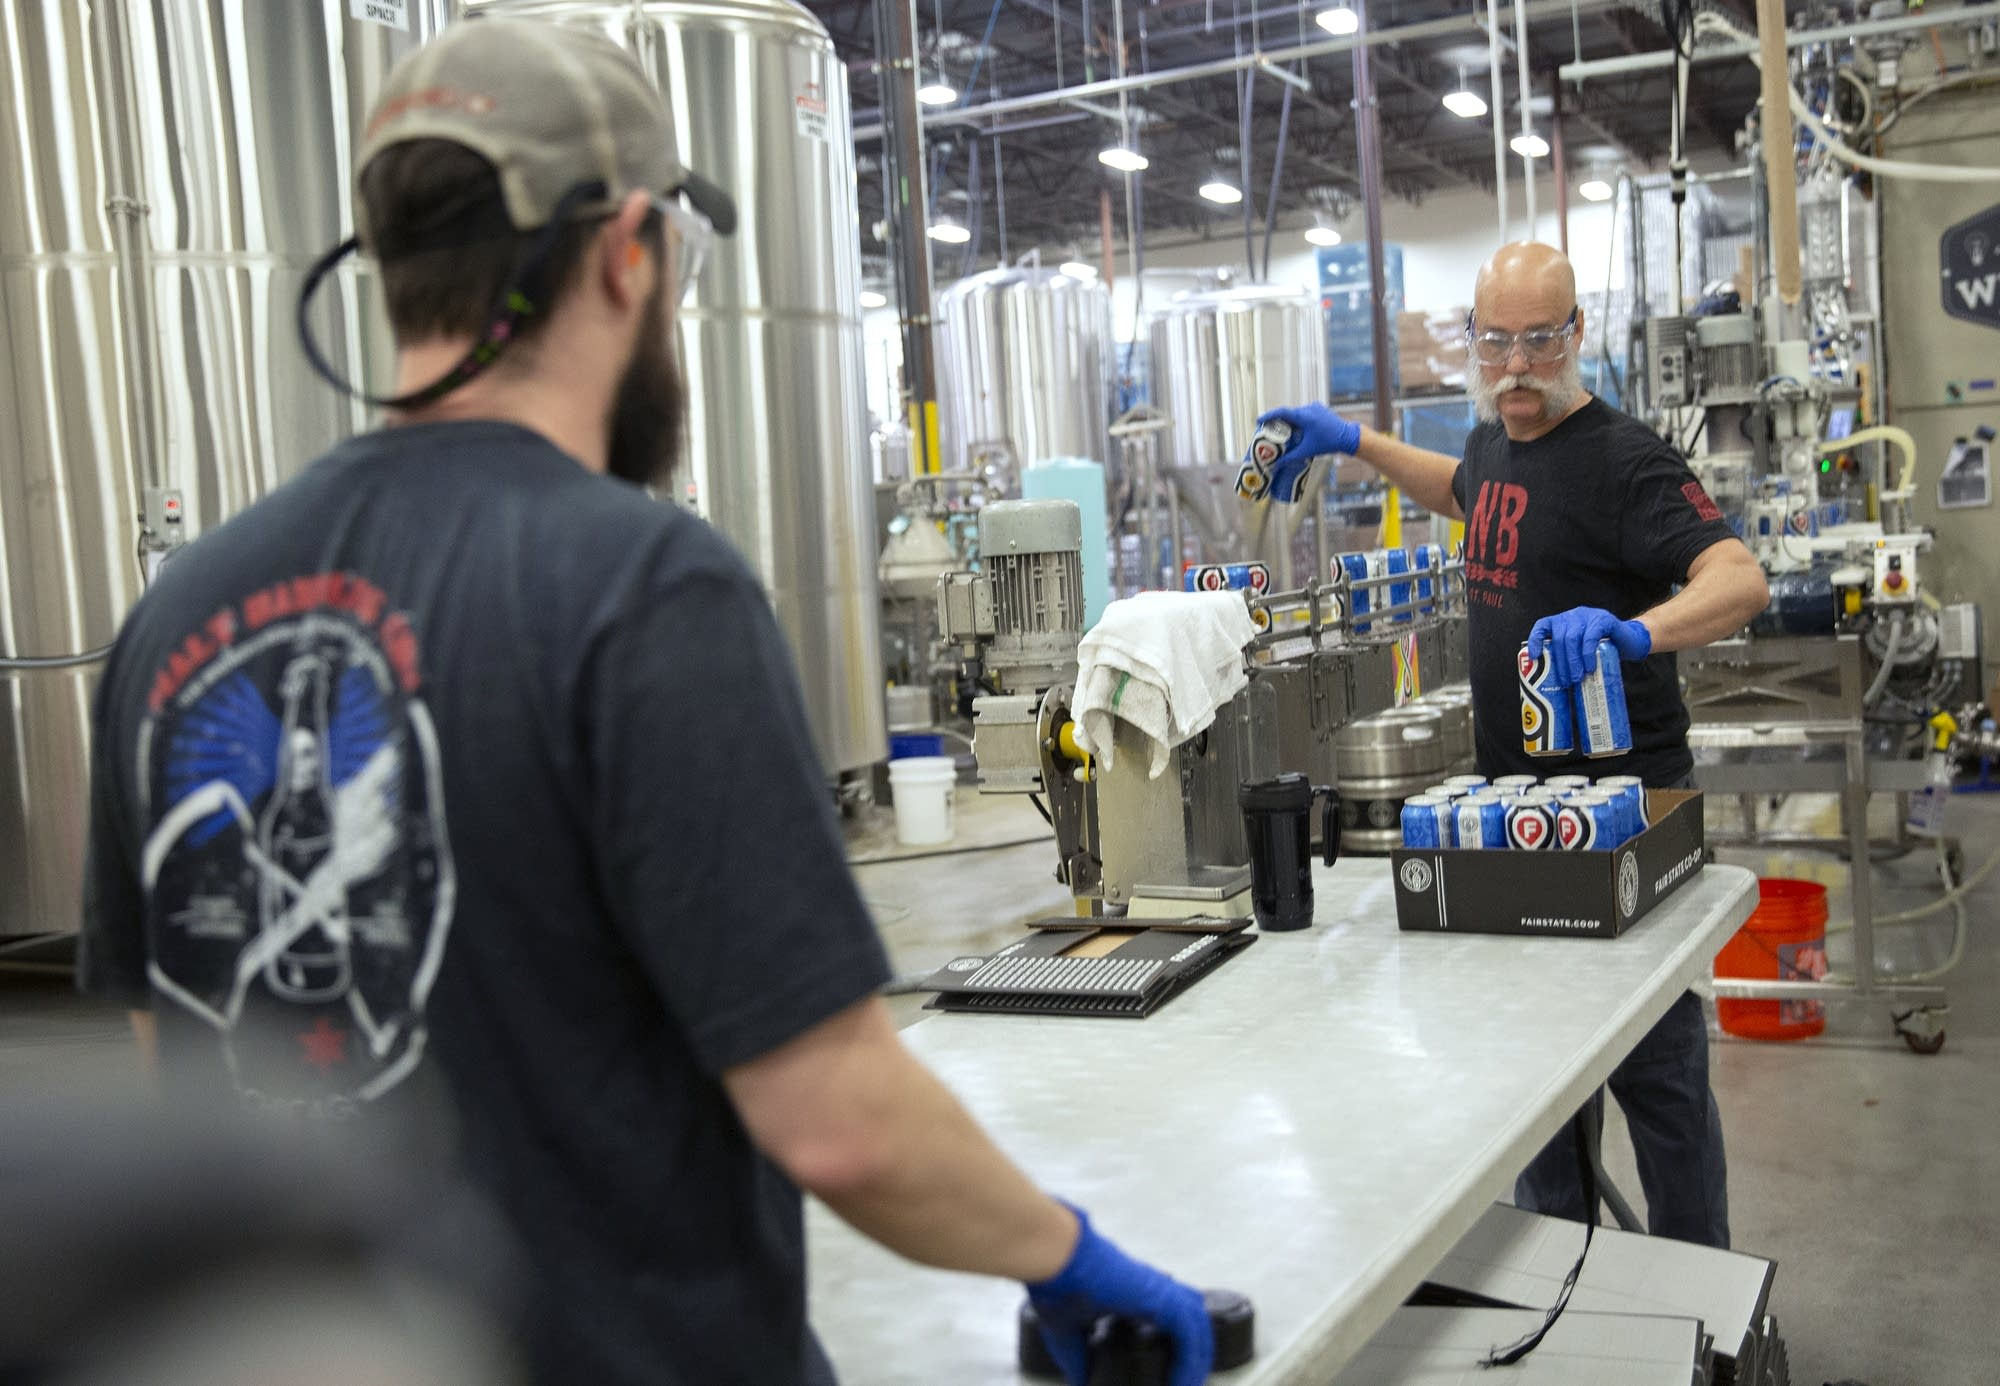 Jeff North and Collin Russell Package Pahlay cans, hazy pale lover.